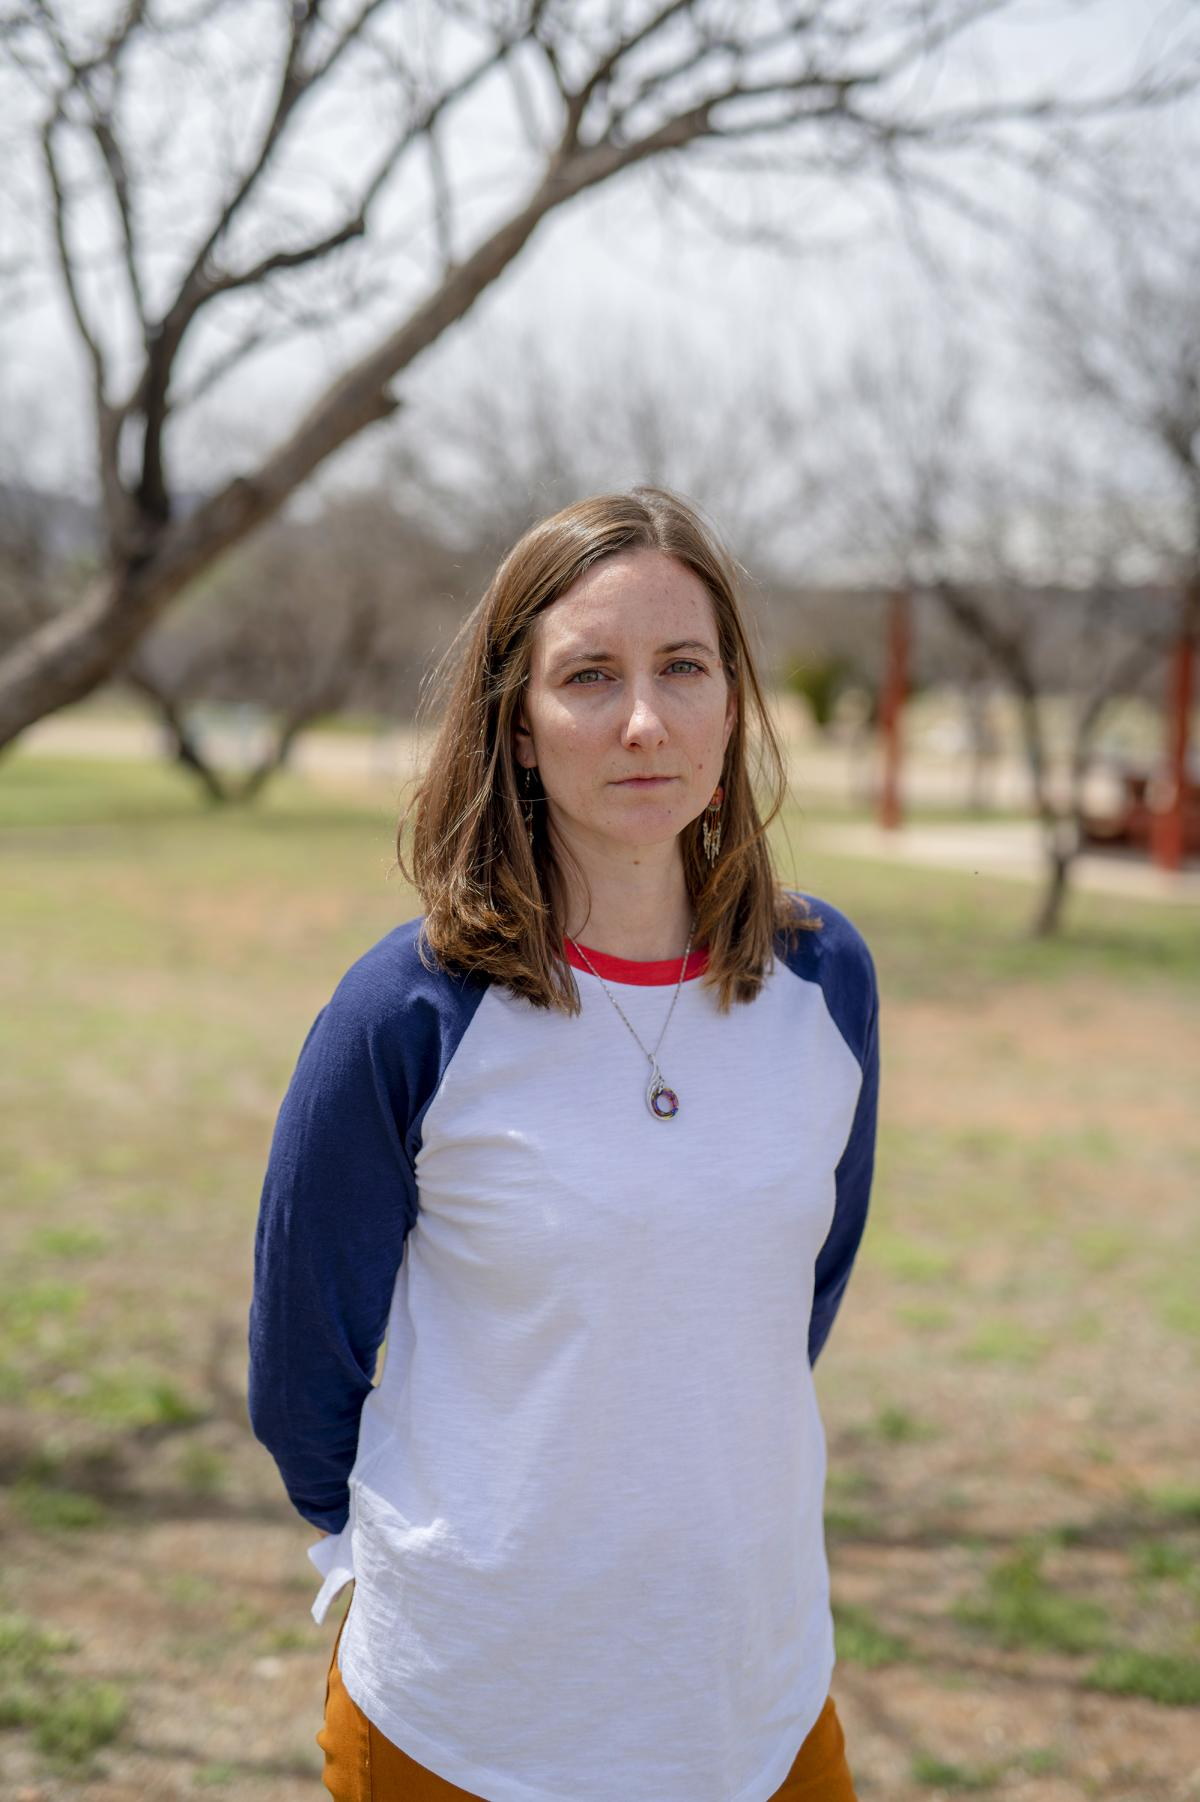 Kristen Randall publishes the local monthly newspaper, Connection. She moved her family to Tucson, Ariz., after receiving harassing messages and threats for several years. She still comes back to Arivaca on weekends.